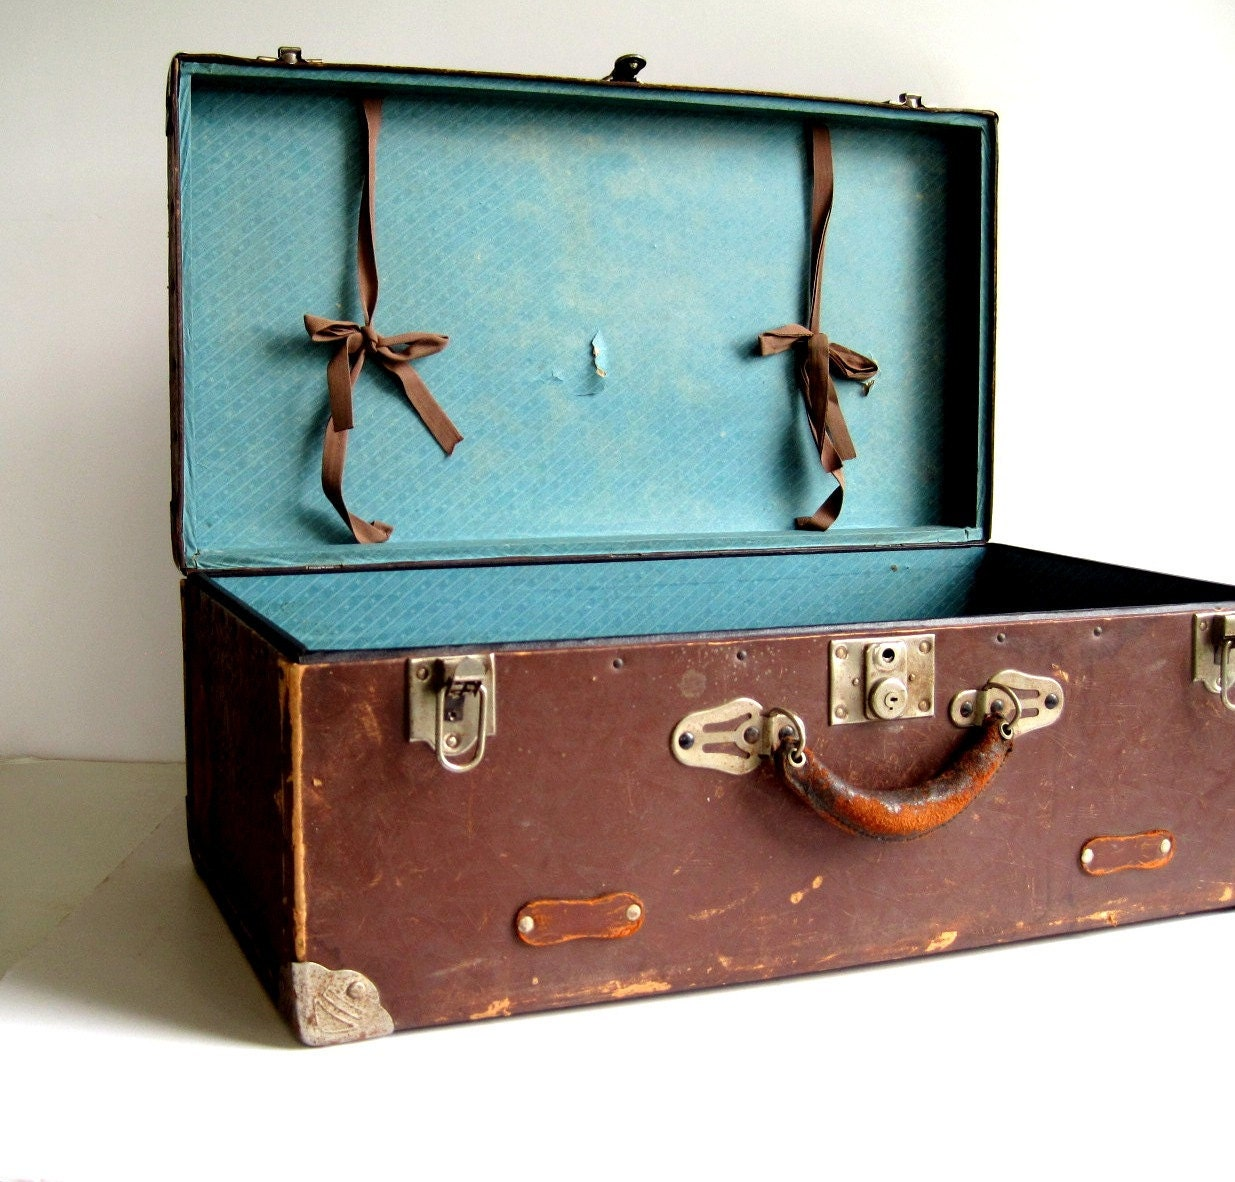 Antique Suitcase Trunk Chest Metal Corners Leather Accents